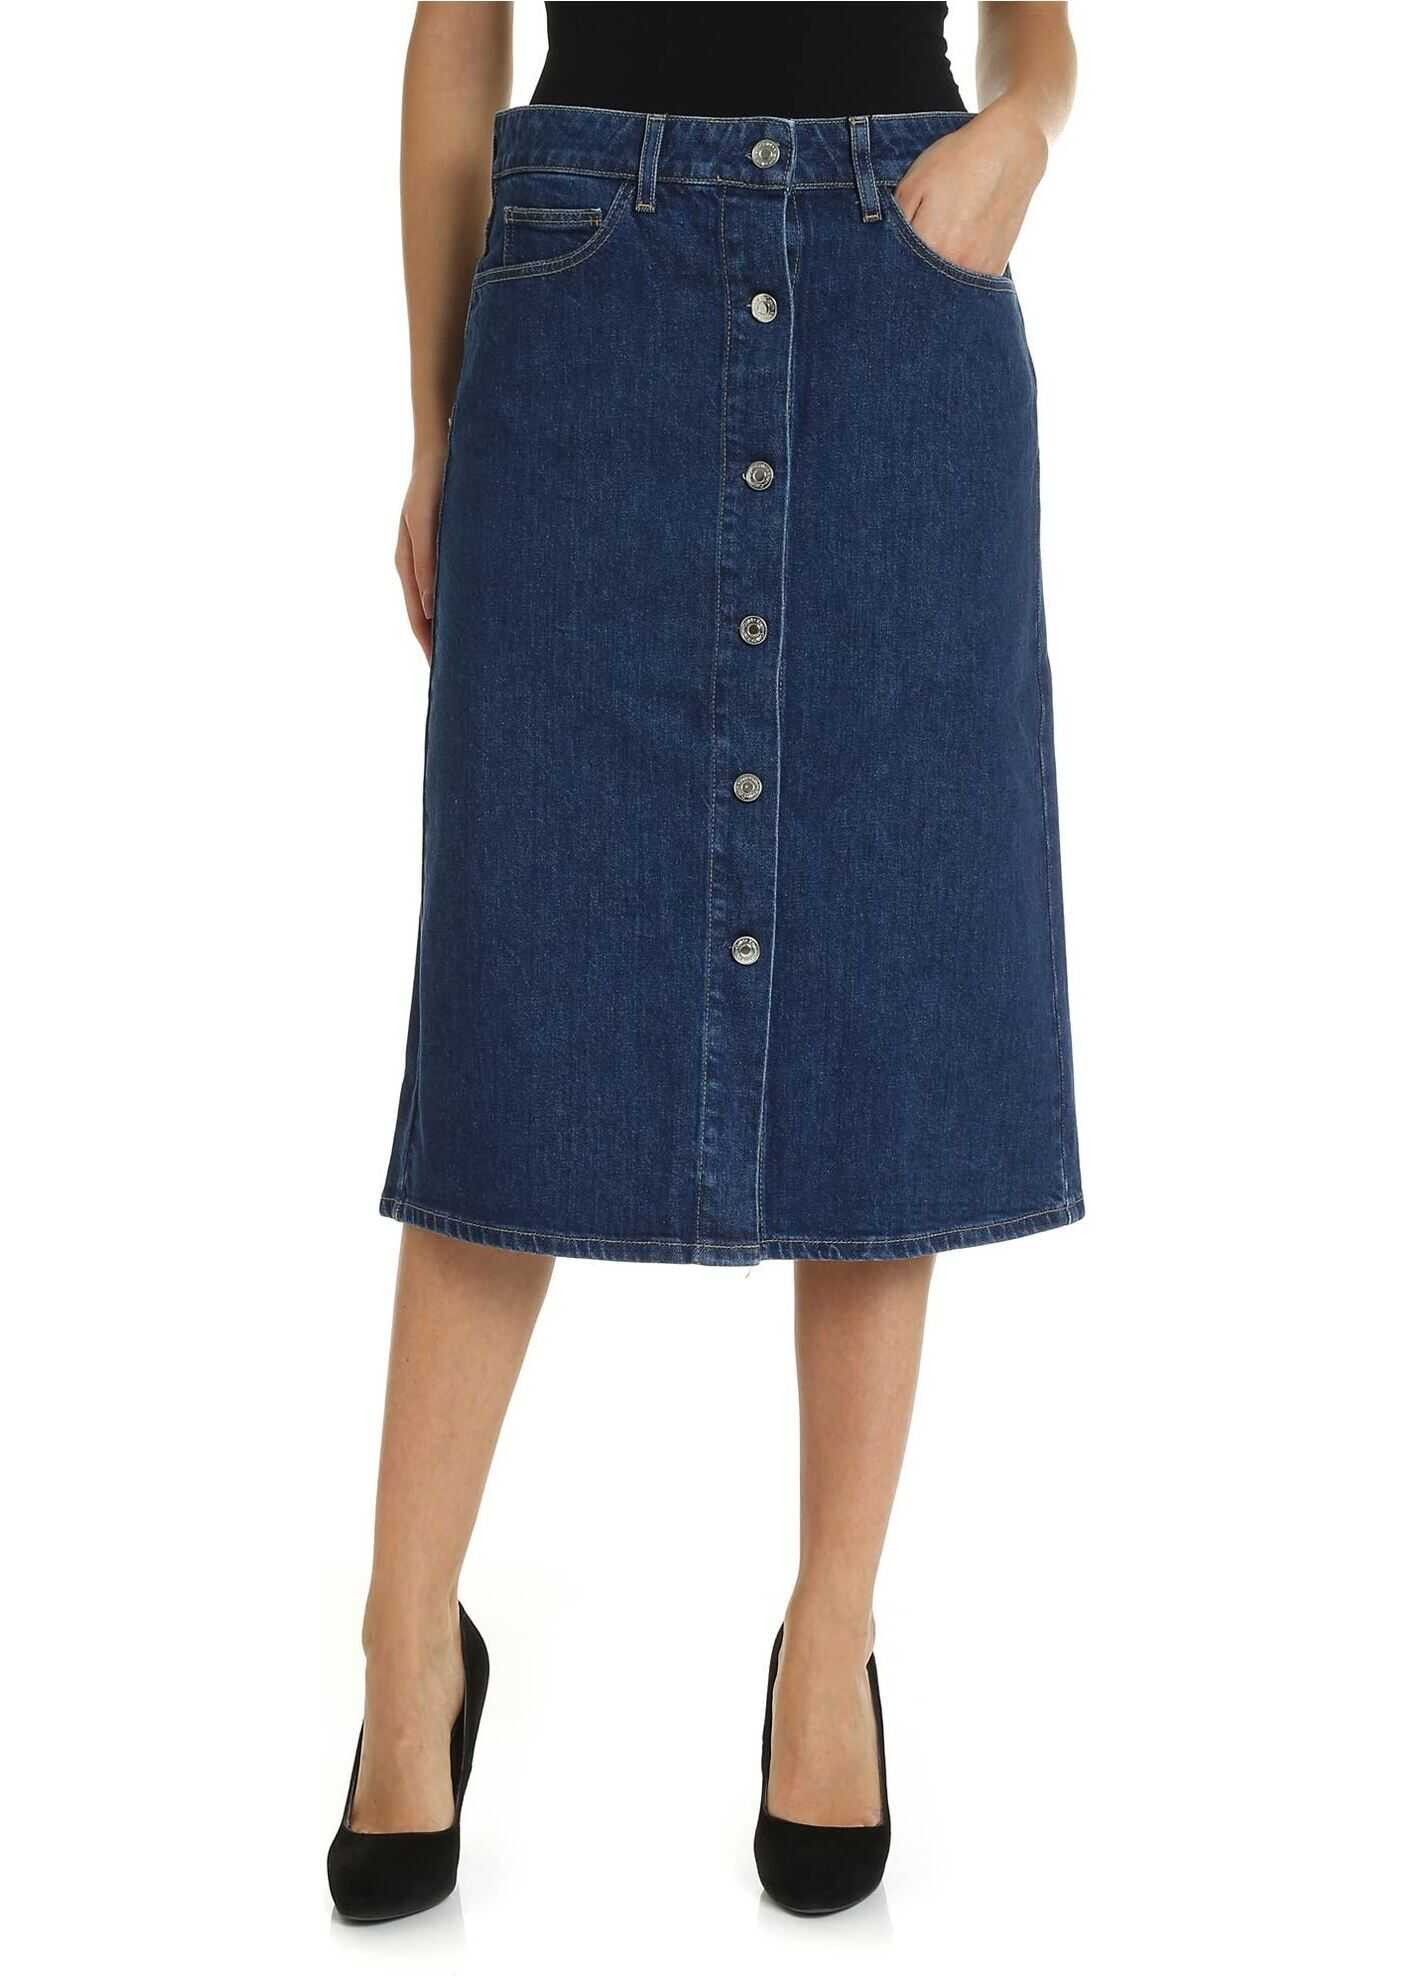 Calvin Klein 5-Pocket Skirt In Blue Denim Blue